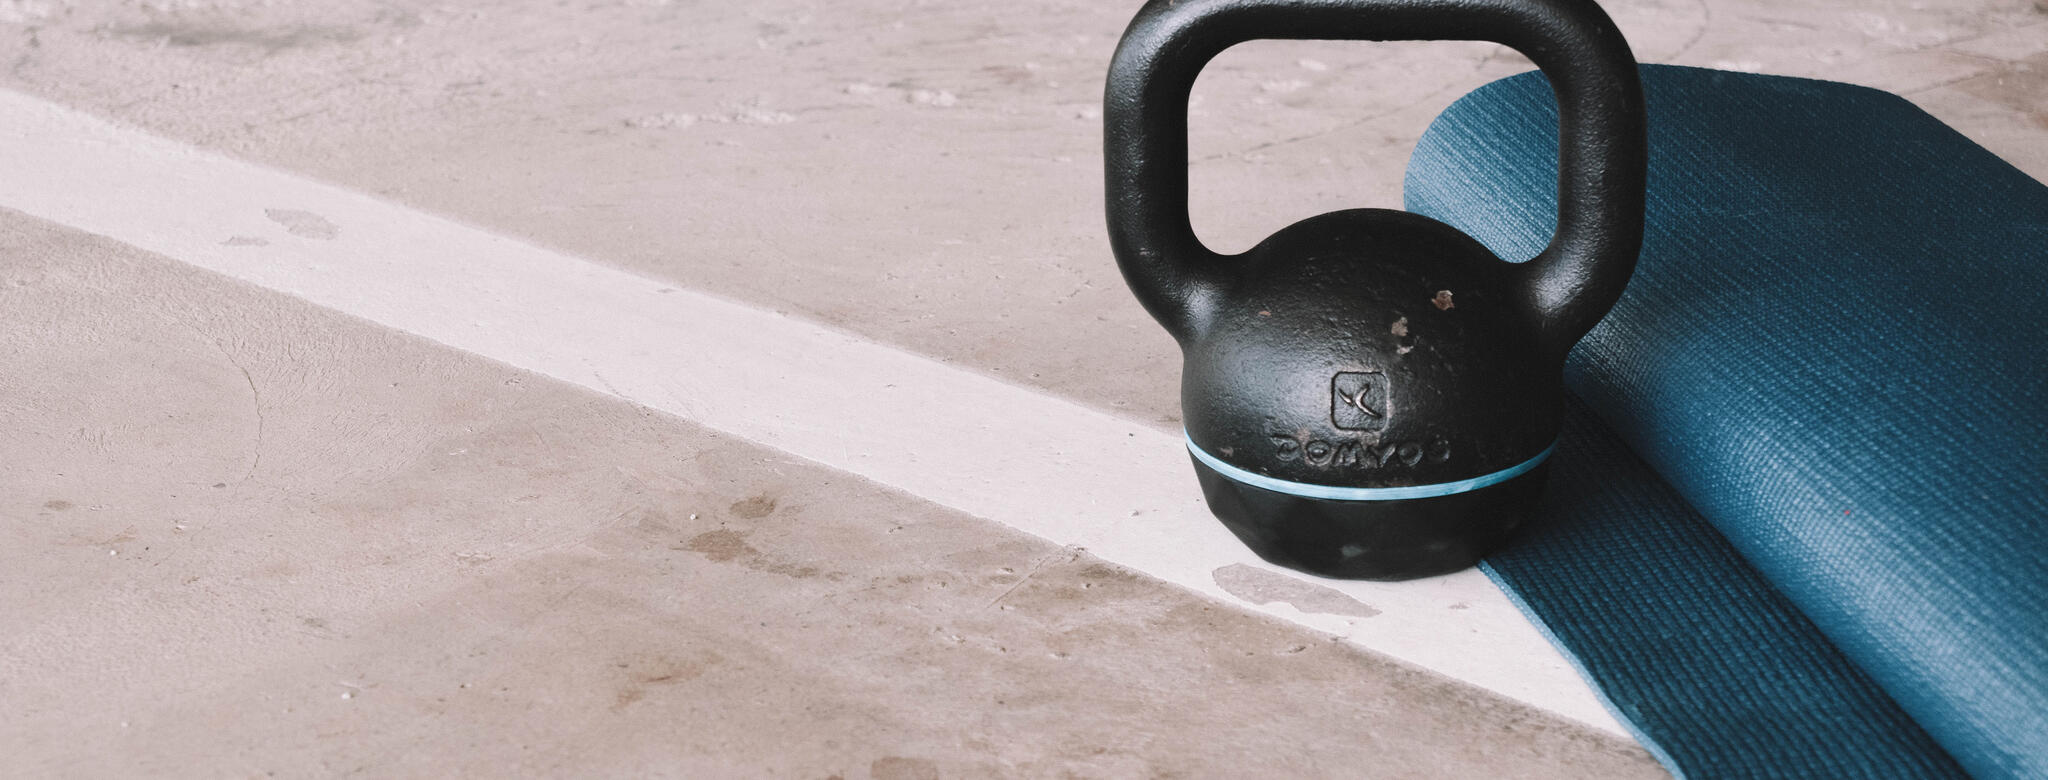 A kettlebell and a yoga mat